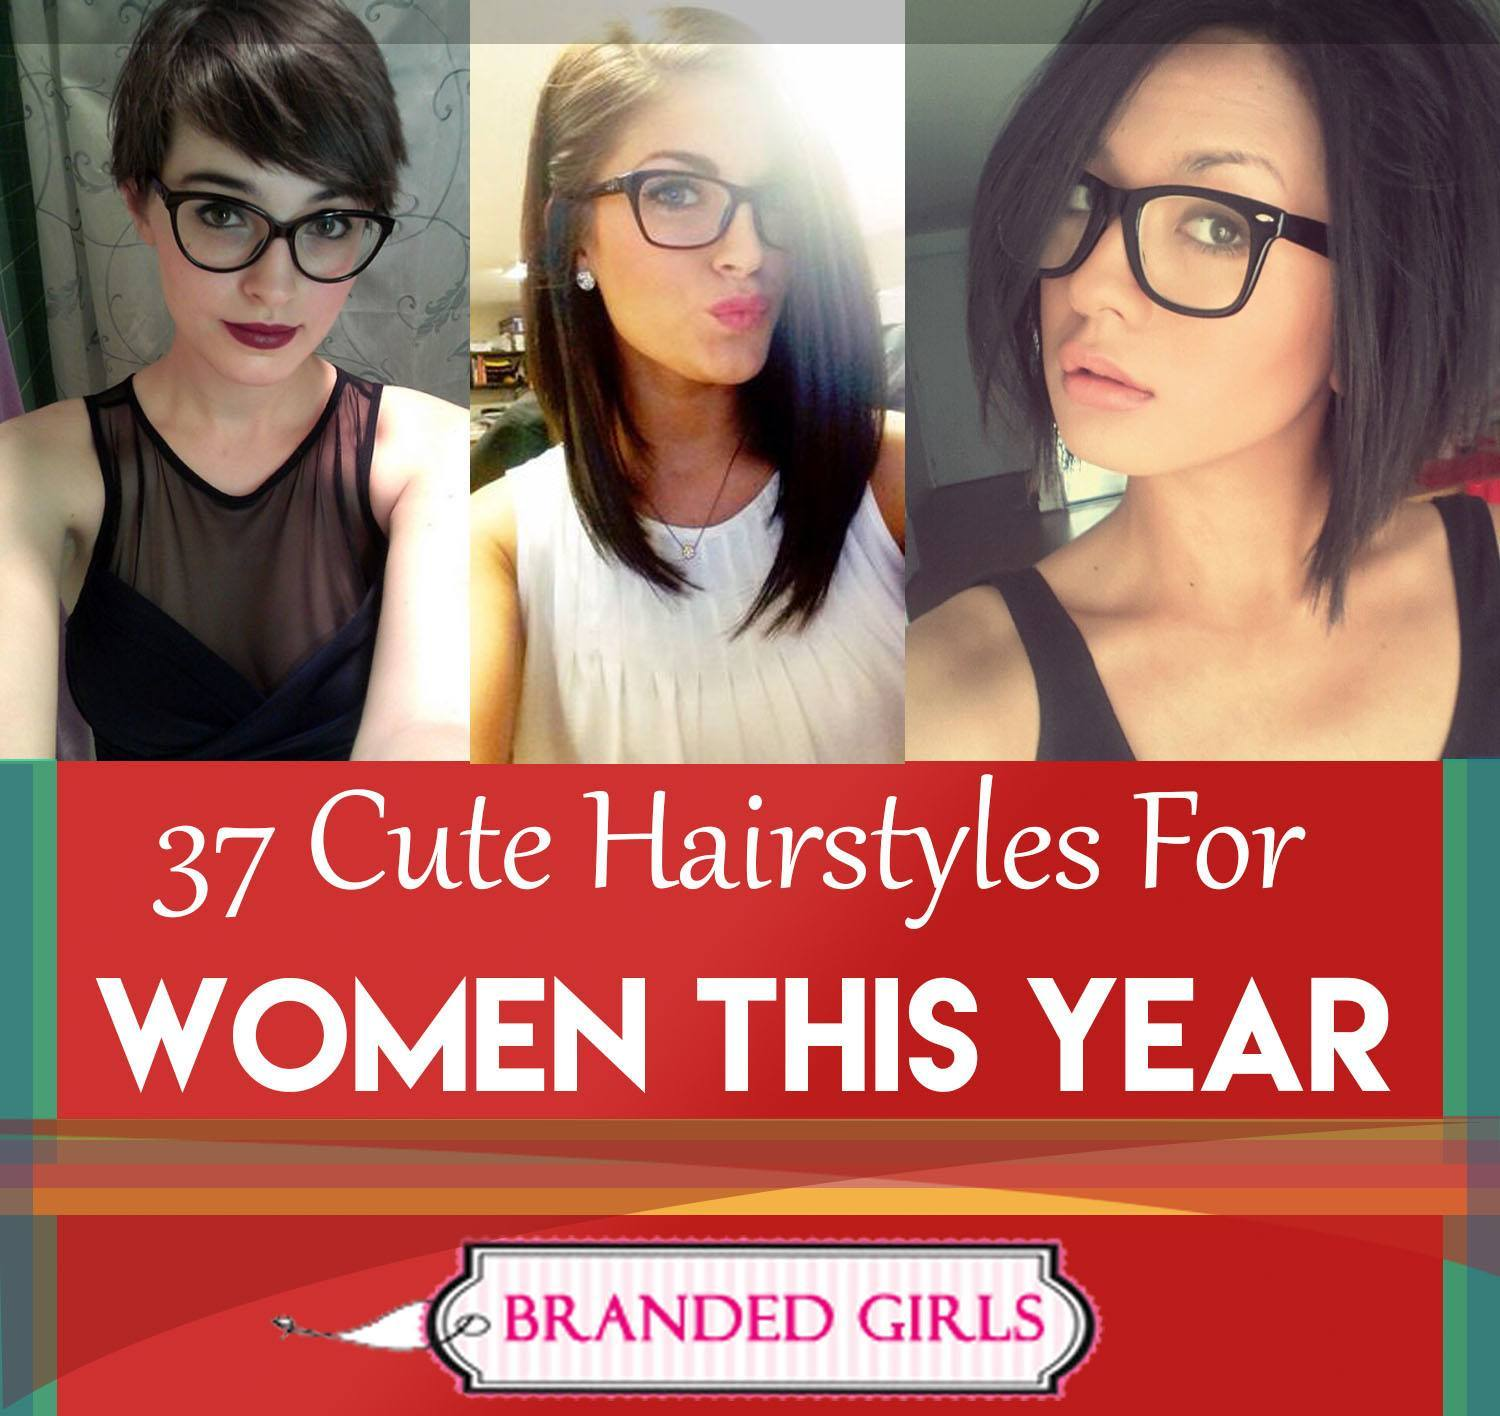 37 cute hairstyles for women this year